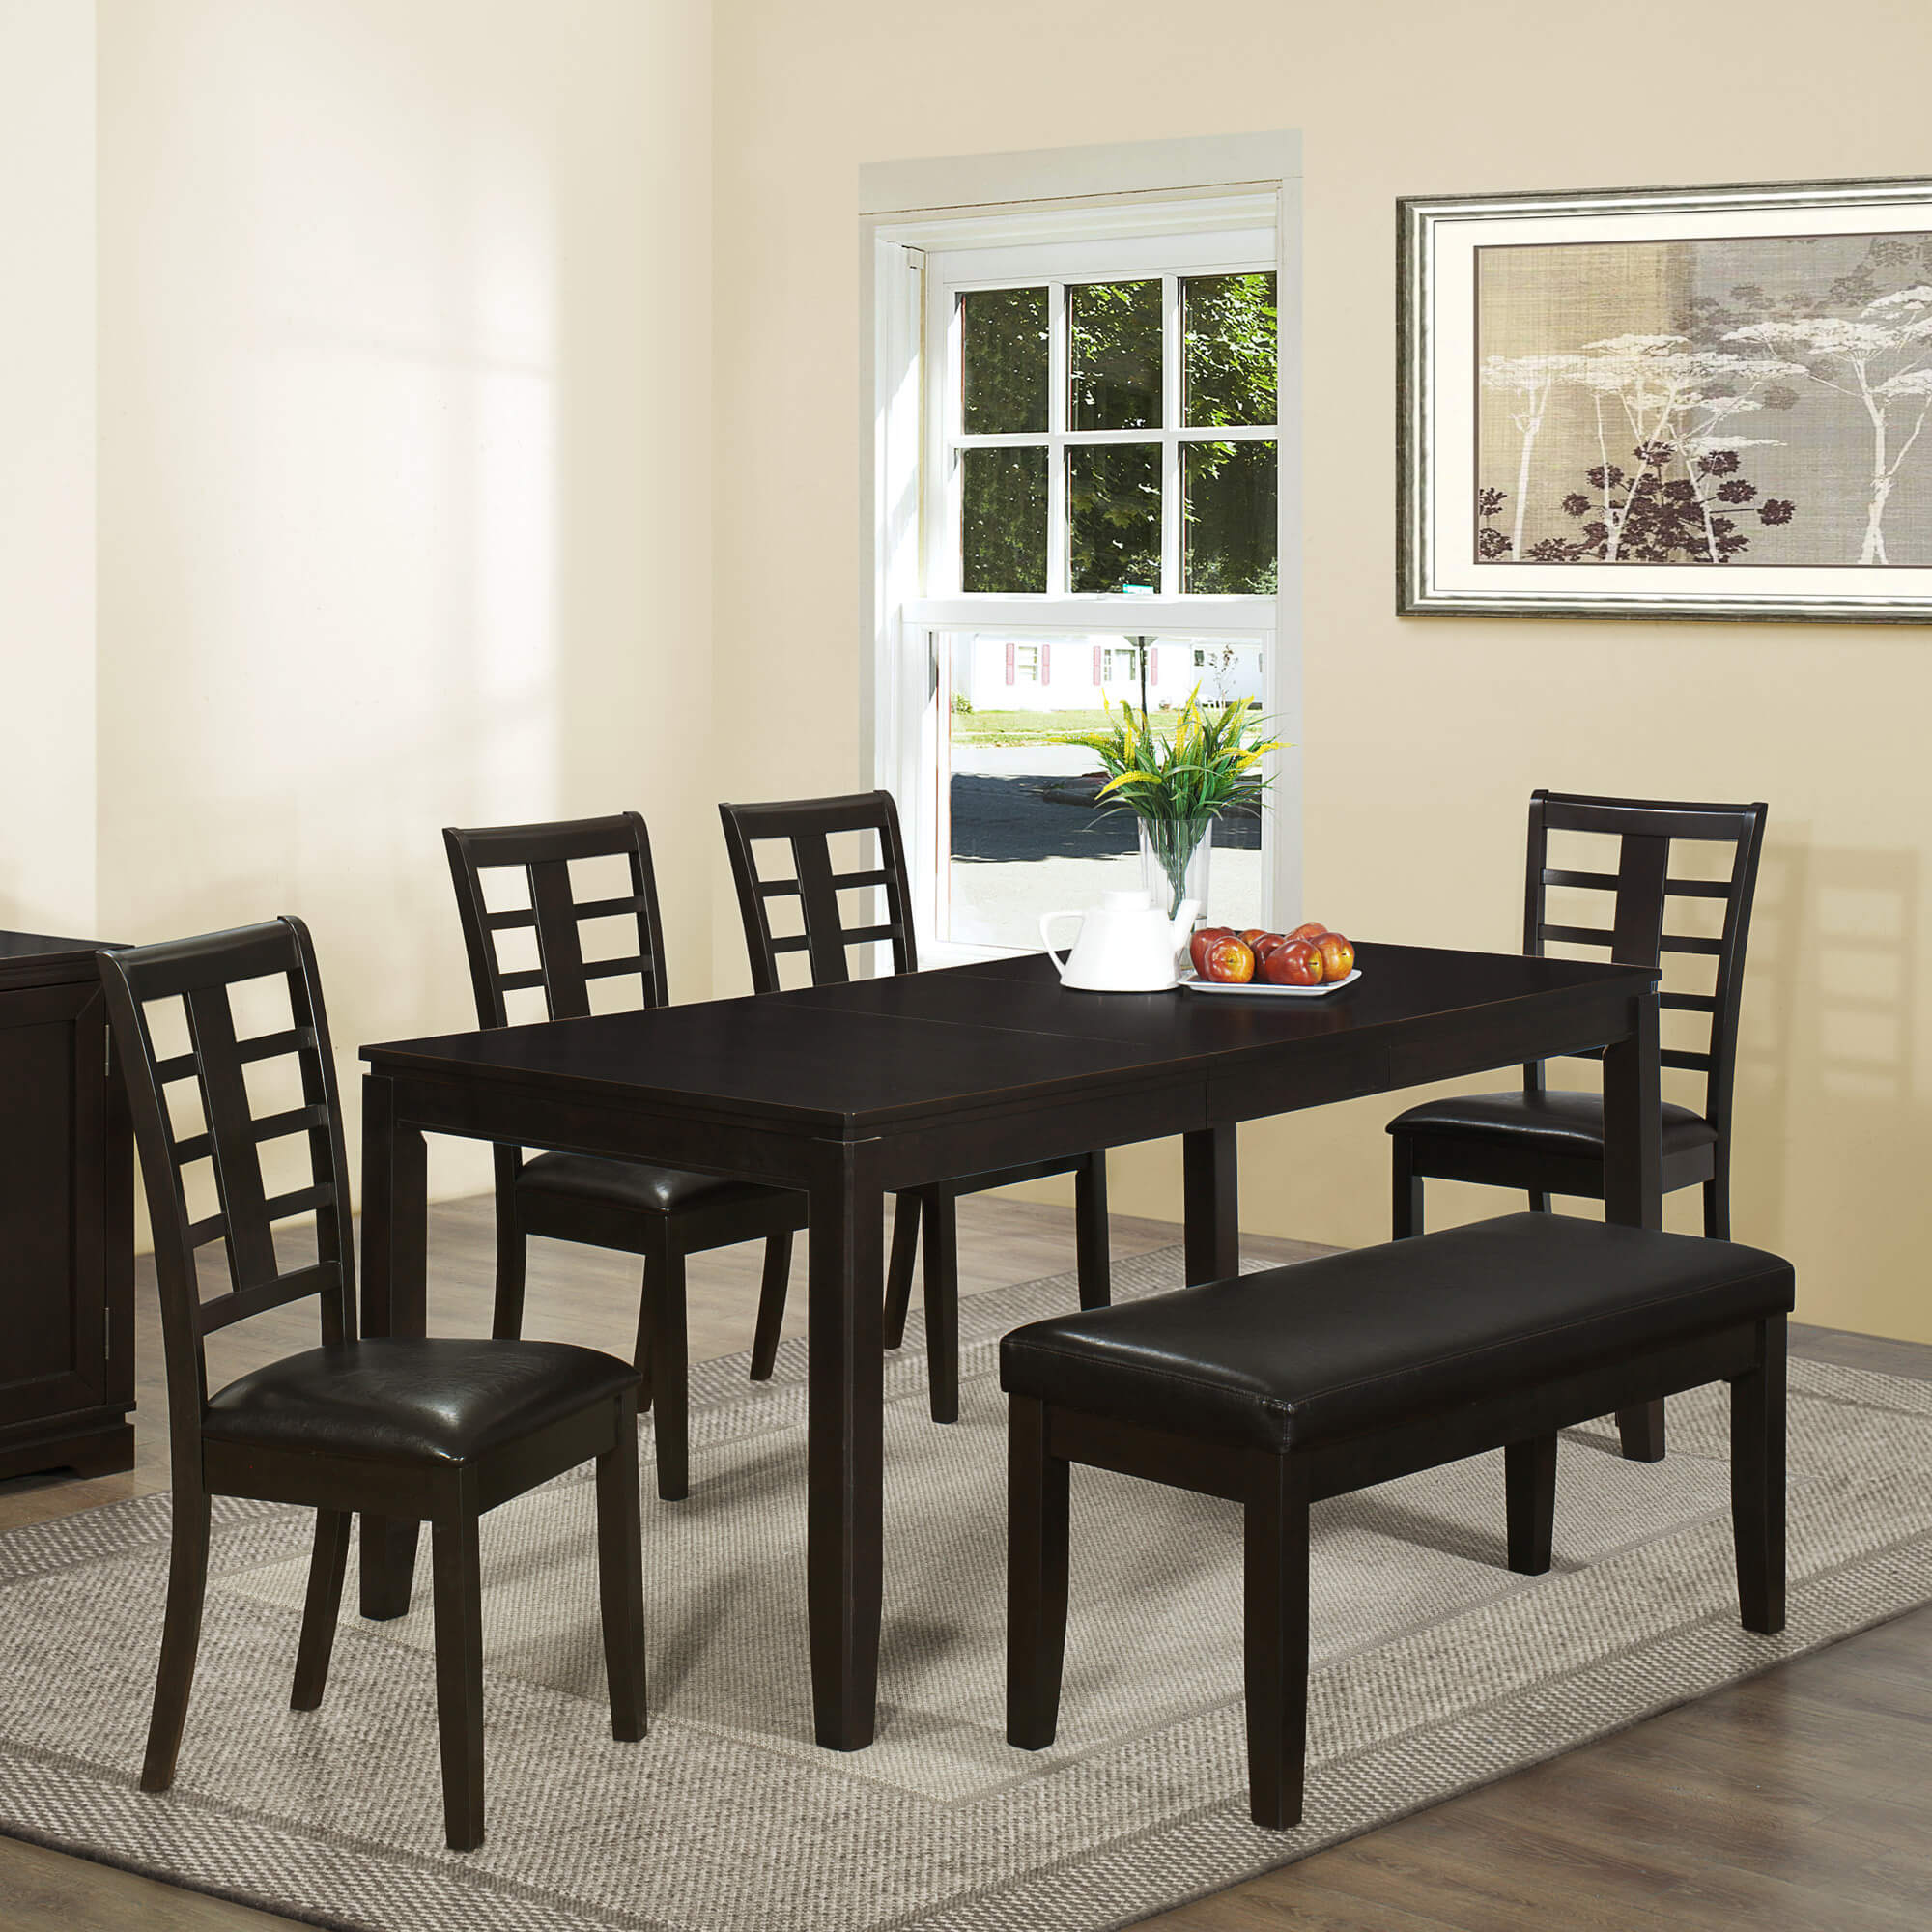 Contemporary Asian-inspired dining set with bench is a good size being able to accommodate 6 people; however, this table is fairly narrow which is great for smaller dining spaces (offering space for people getting in and out).